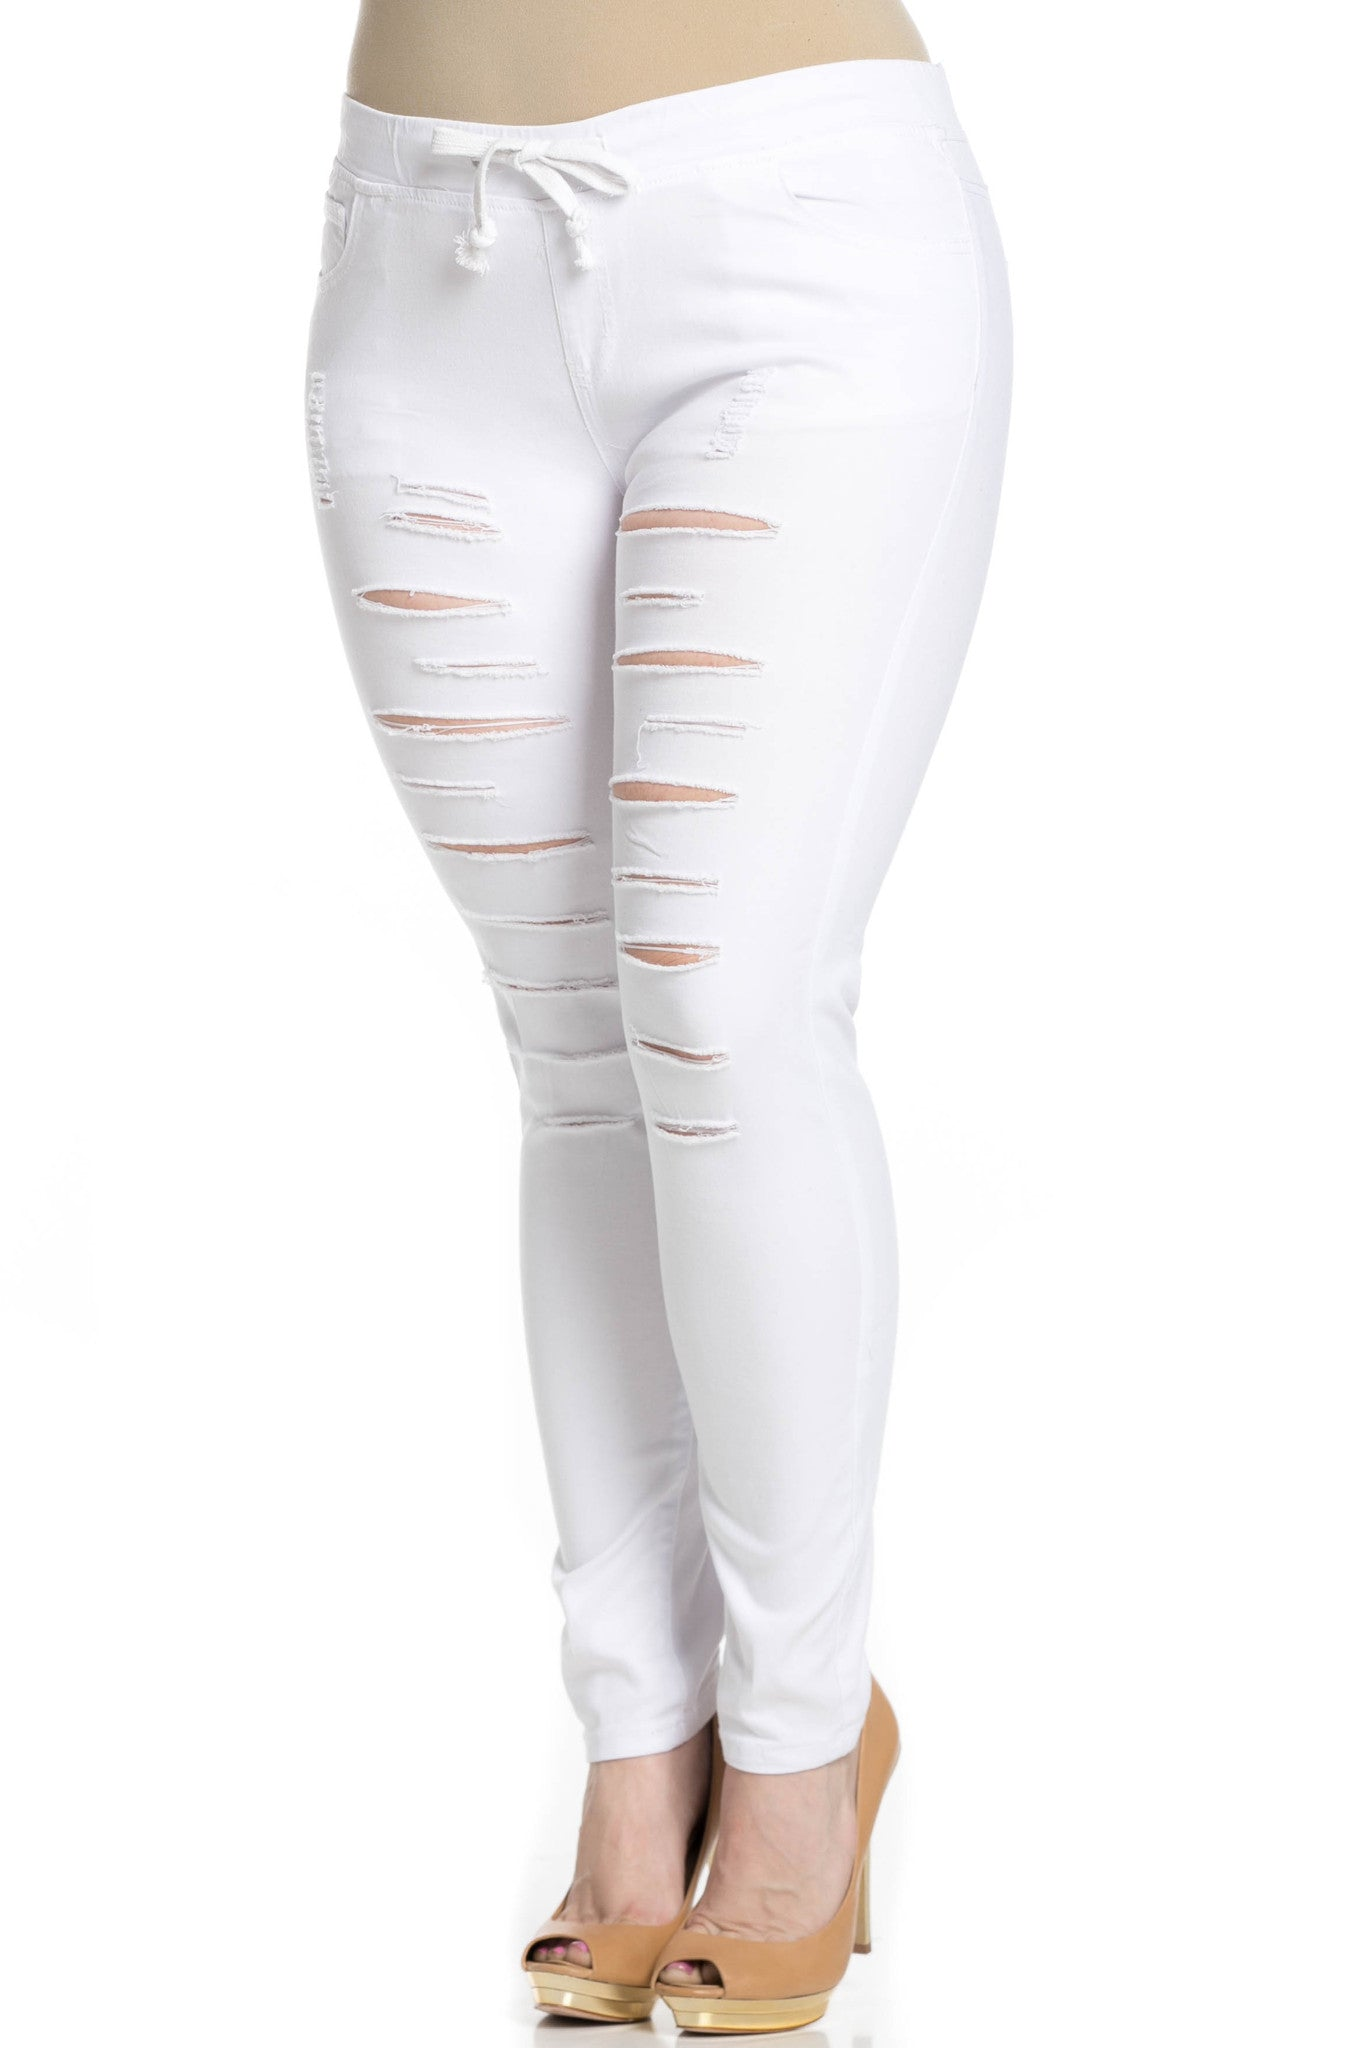 Distressed Skinny White Jogger Jeans - Pants - My Yuccie - 9